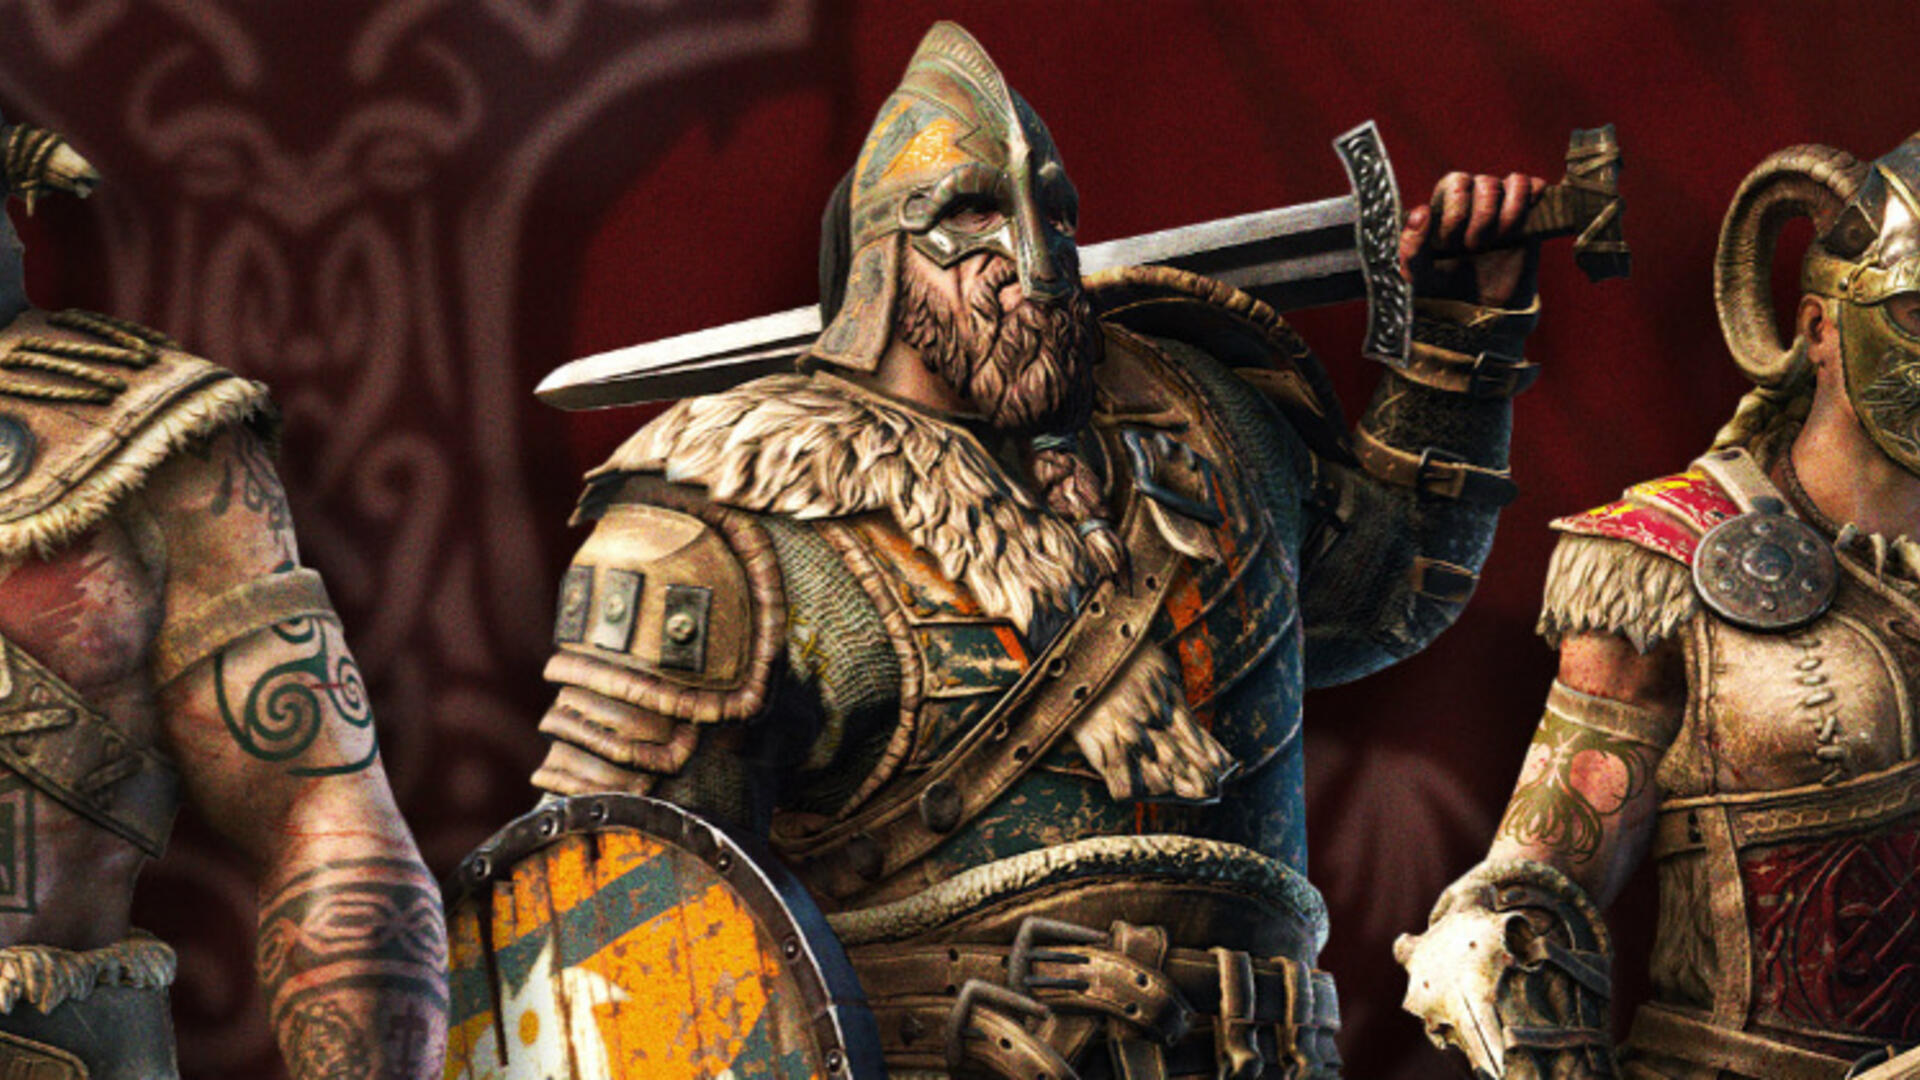 For Honor Community Plans Boycott To Send Message to Ubisoft